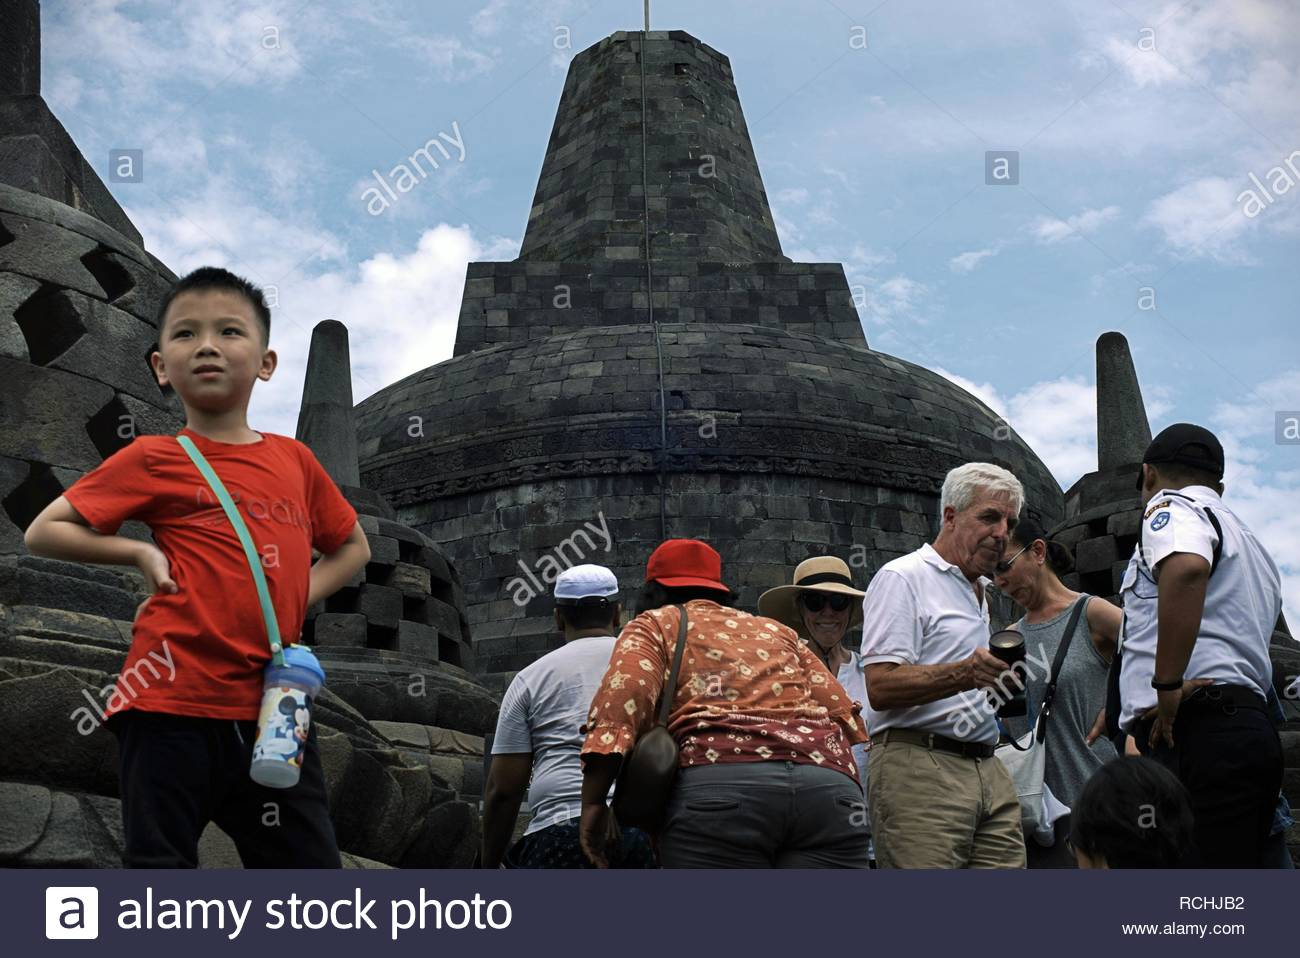 Tourists at Borobudur Temple in Central Java province of Indonesia.  © Reynold Sumayku - Stock Image